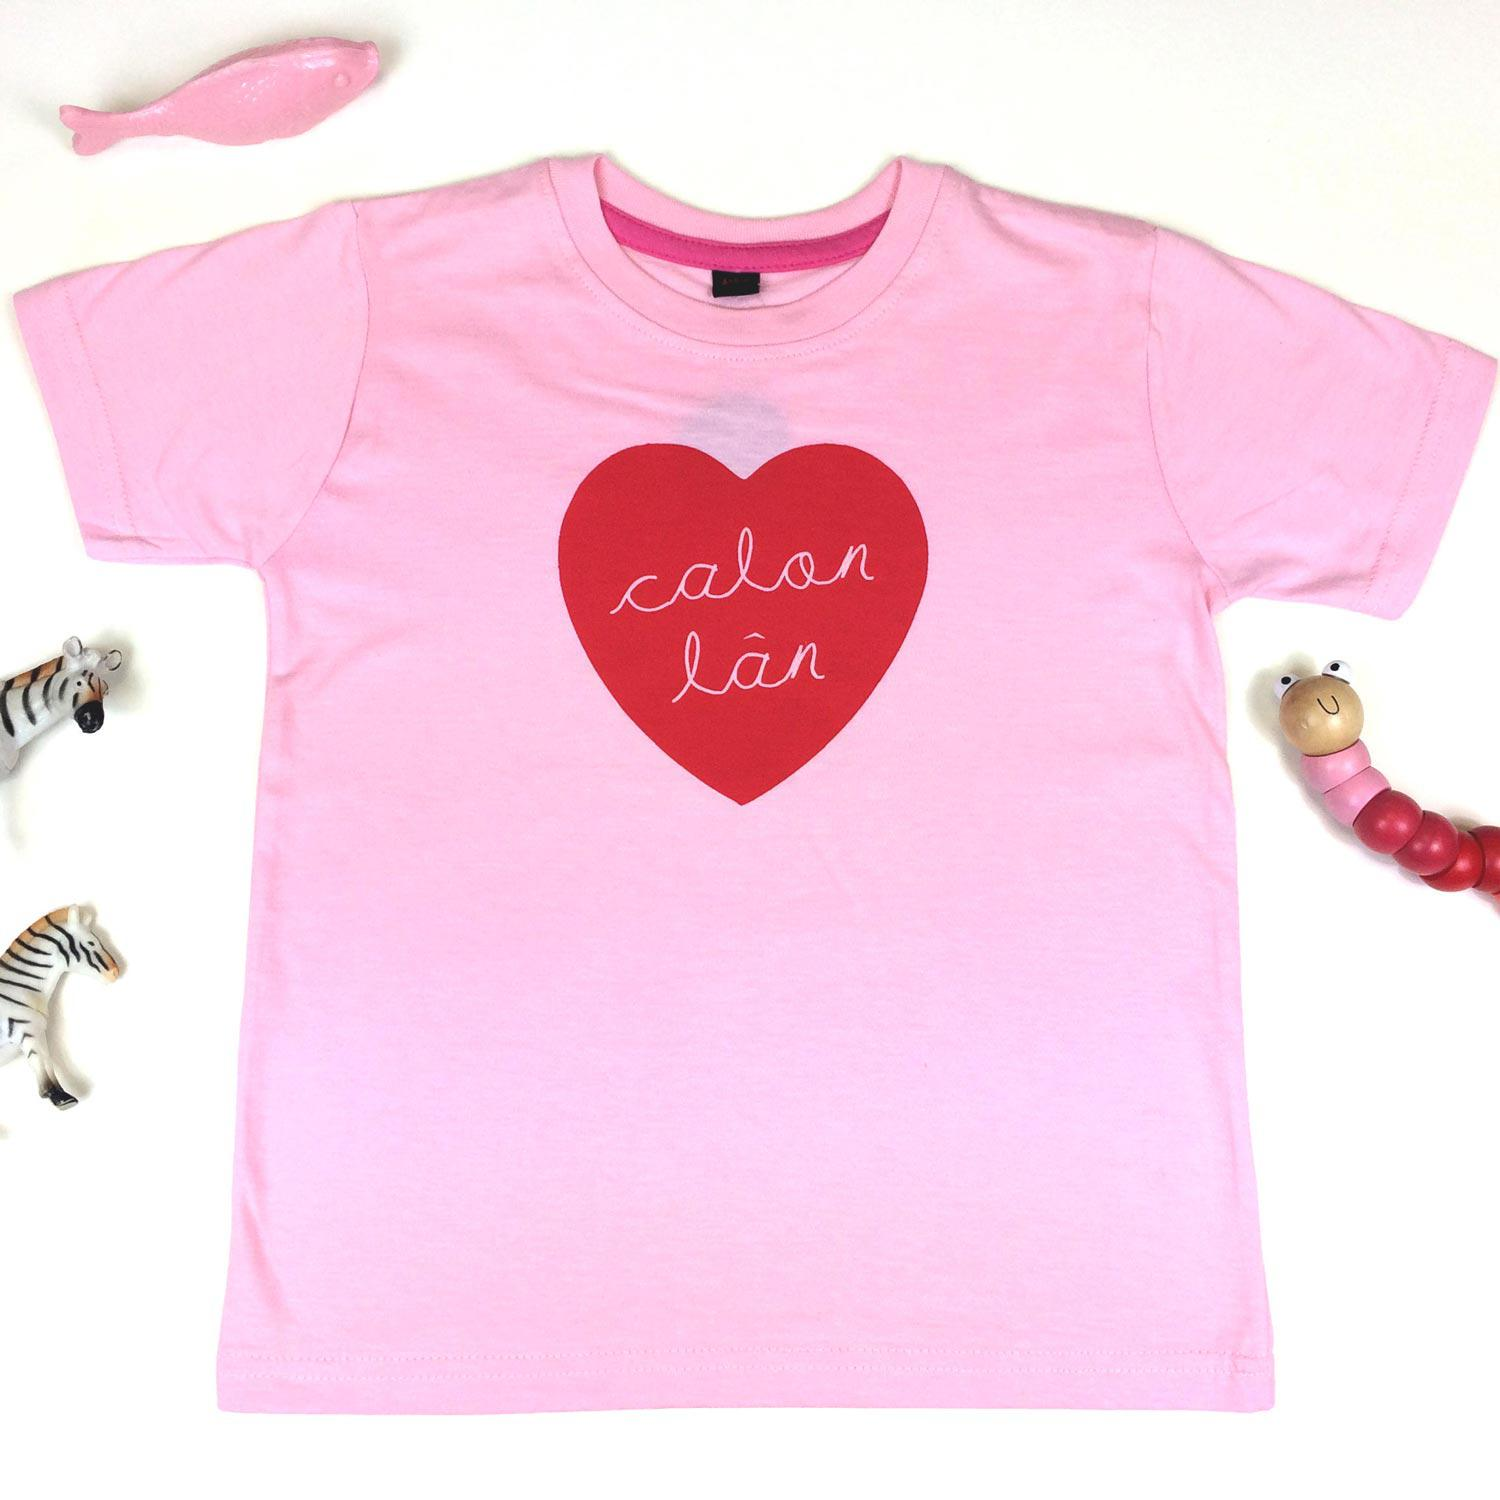 T-shirt - Toddler / Kids - Calon Lan - Pink